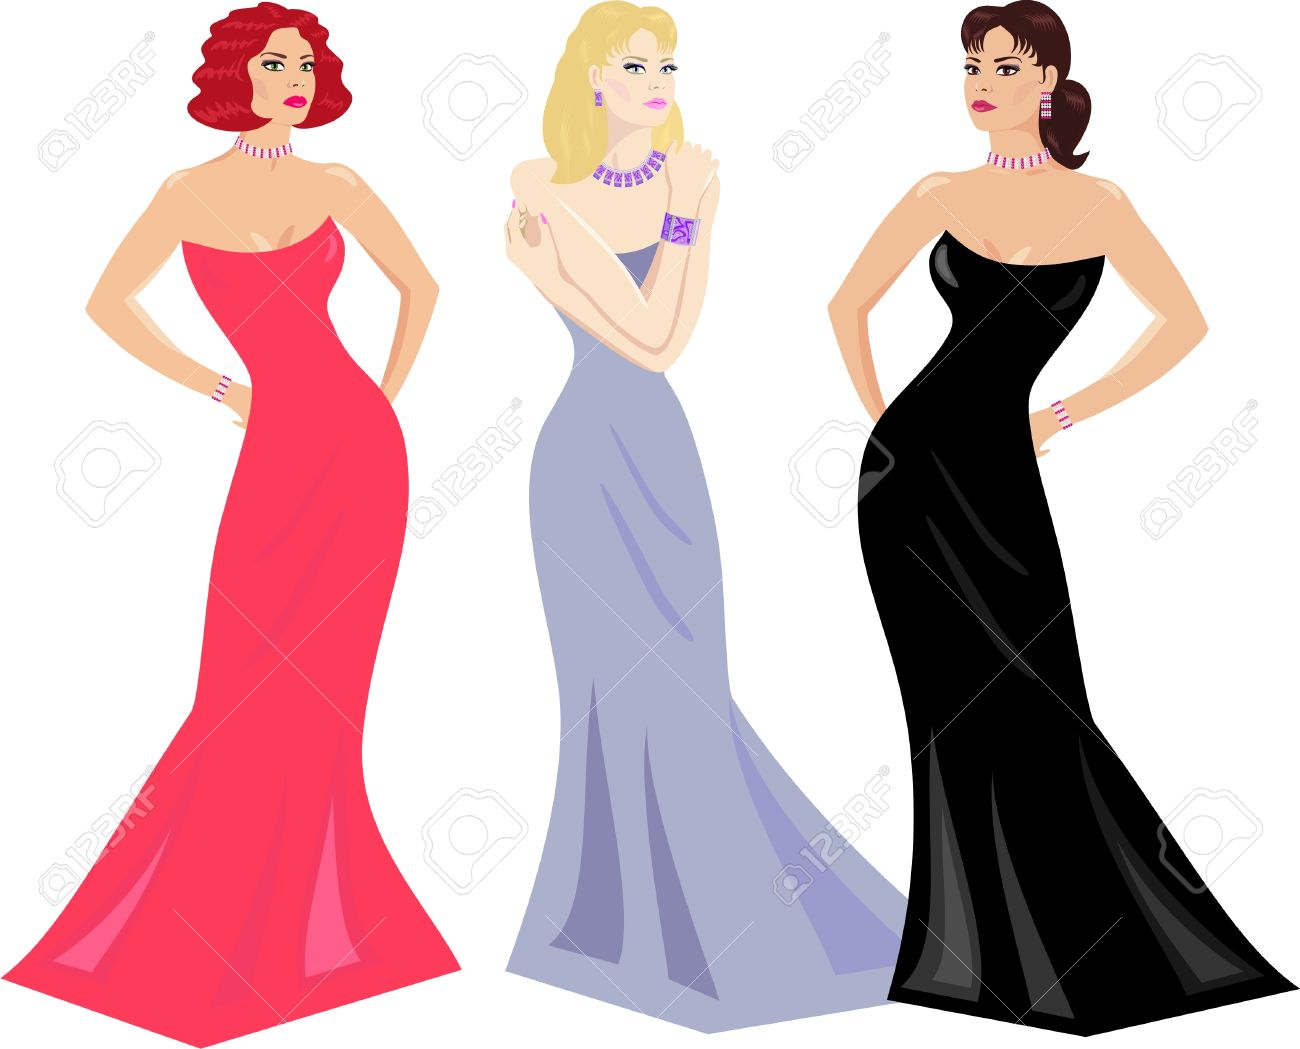 Gown clipart evening gown Dress Evening Gowns Makeup And